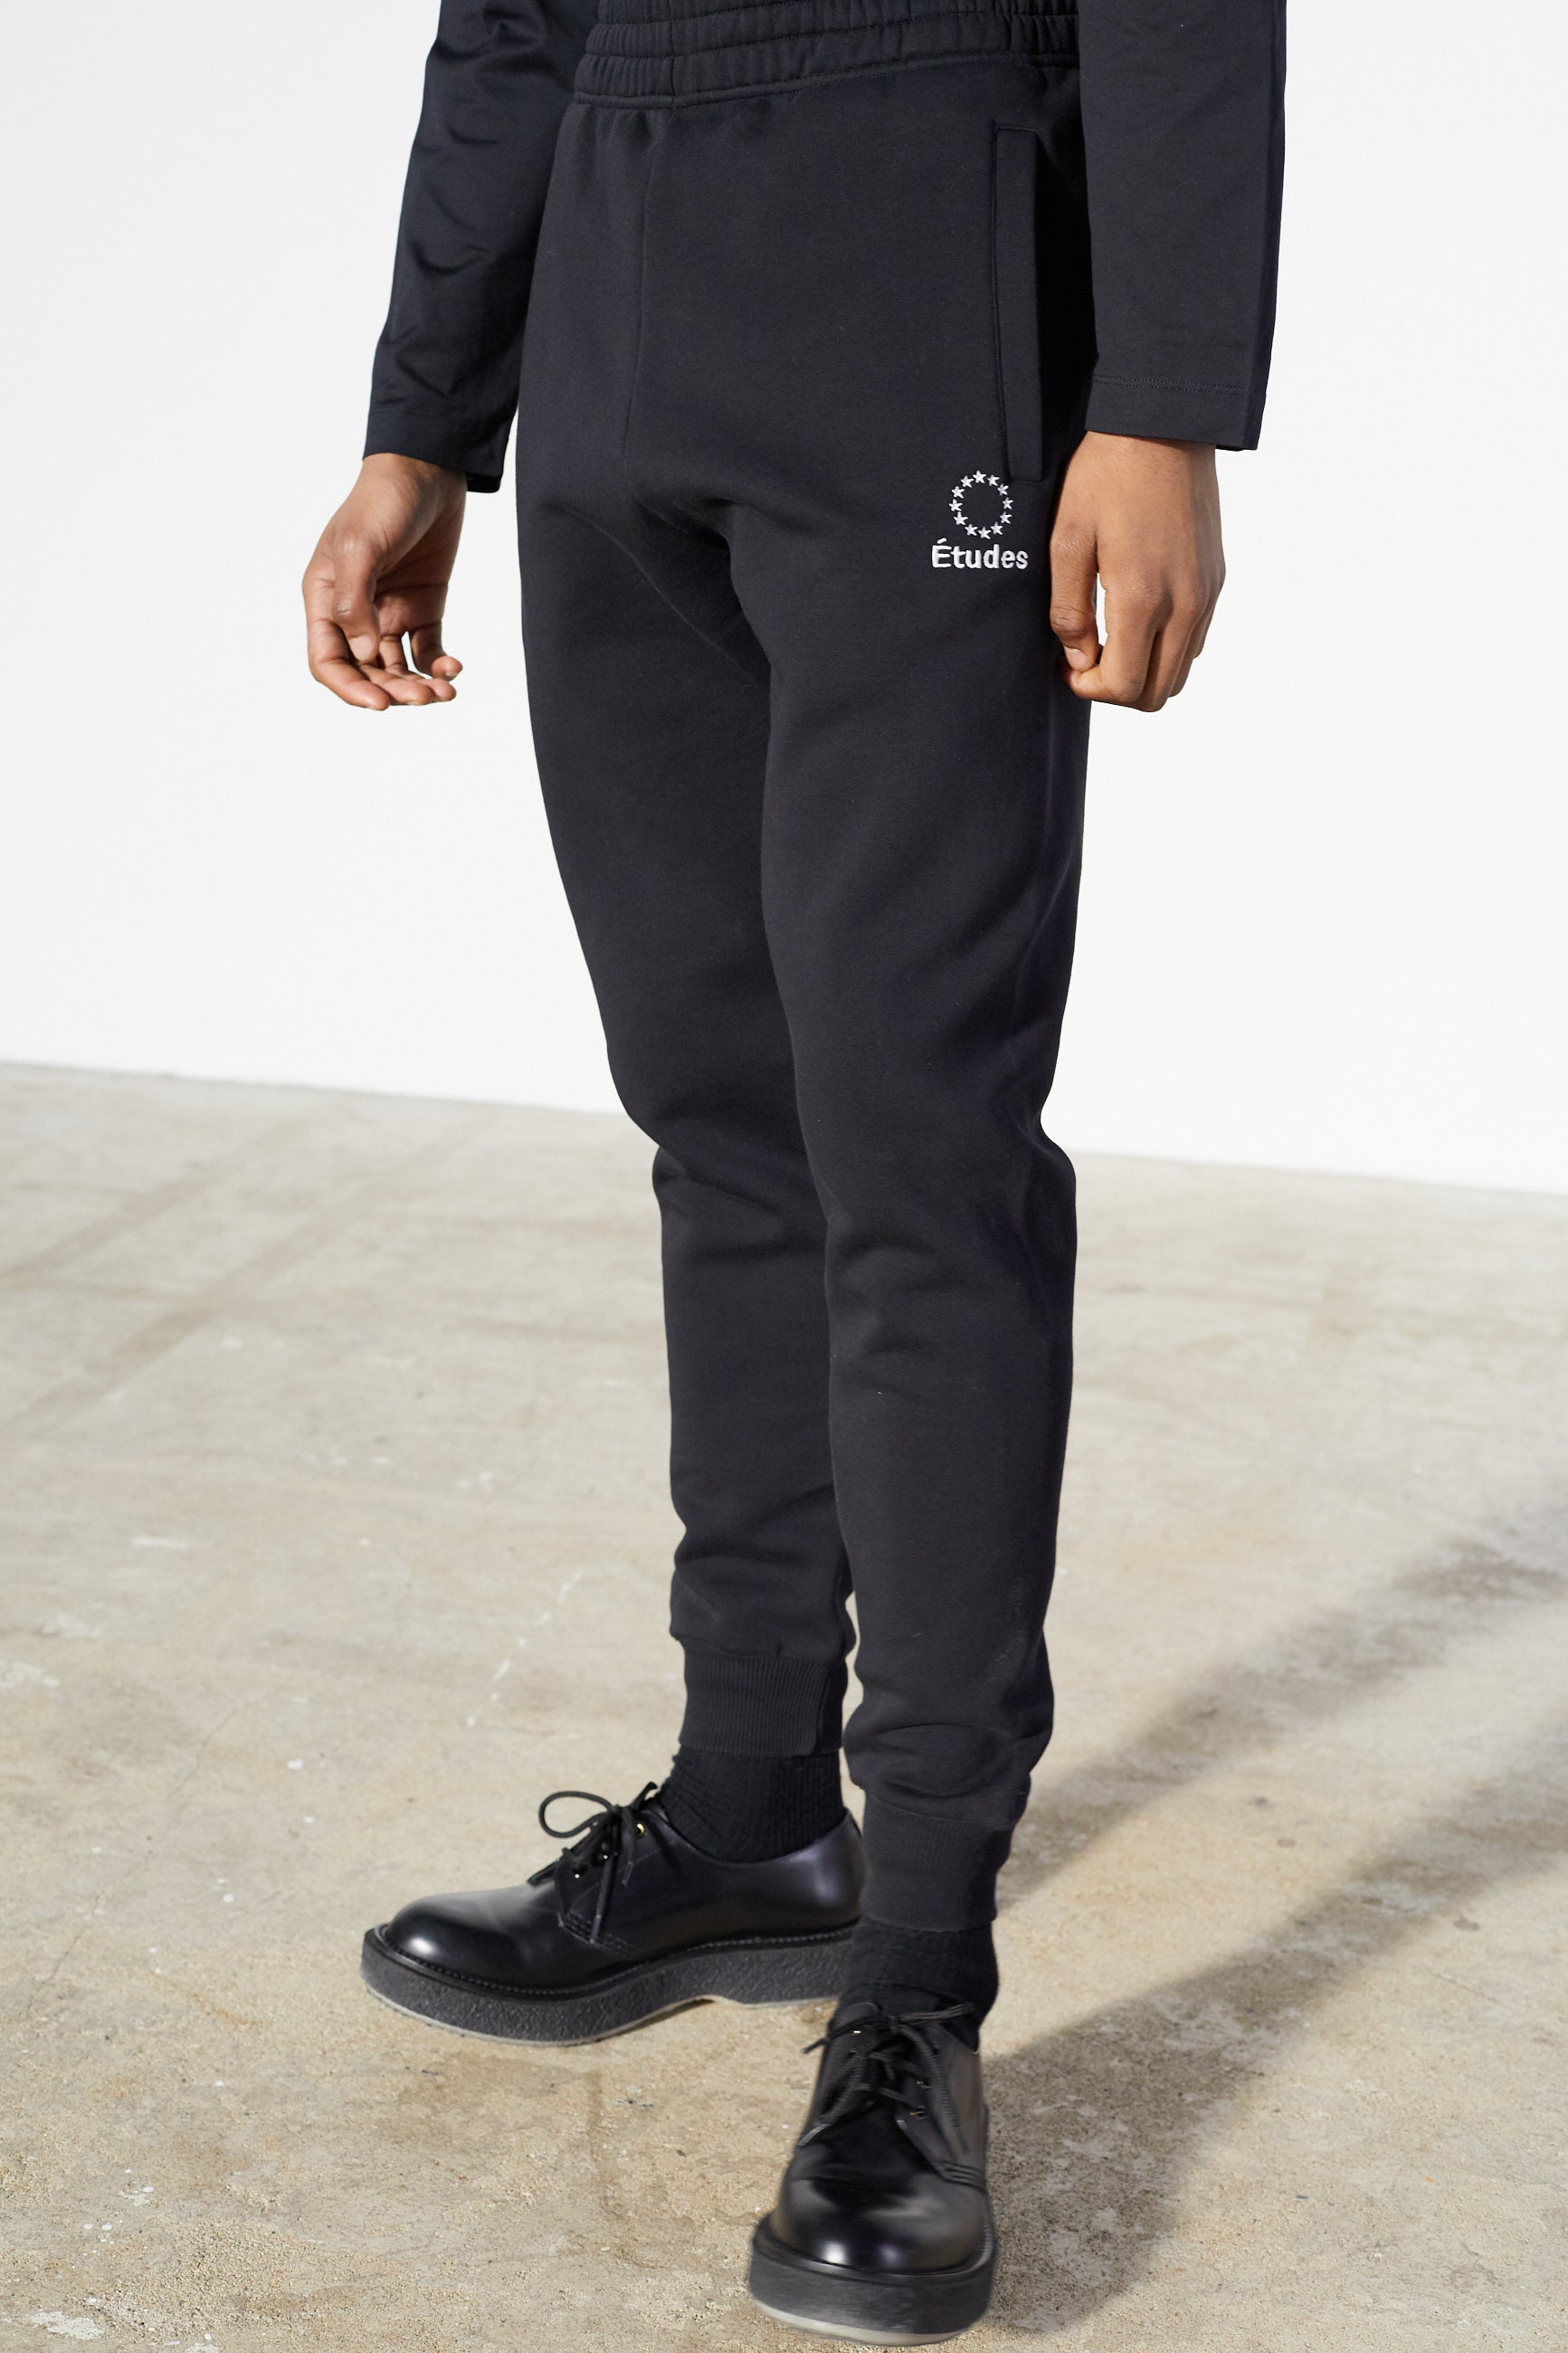 Études Tempera Logo Black Trousers 4